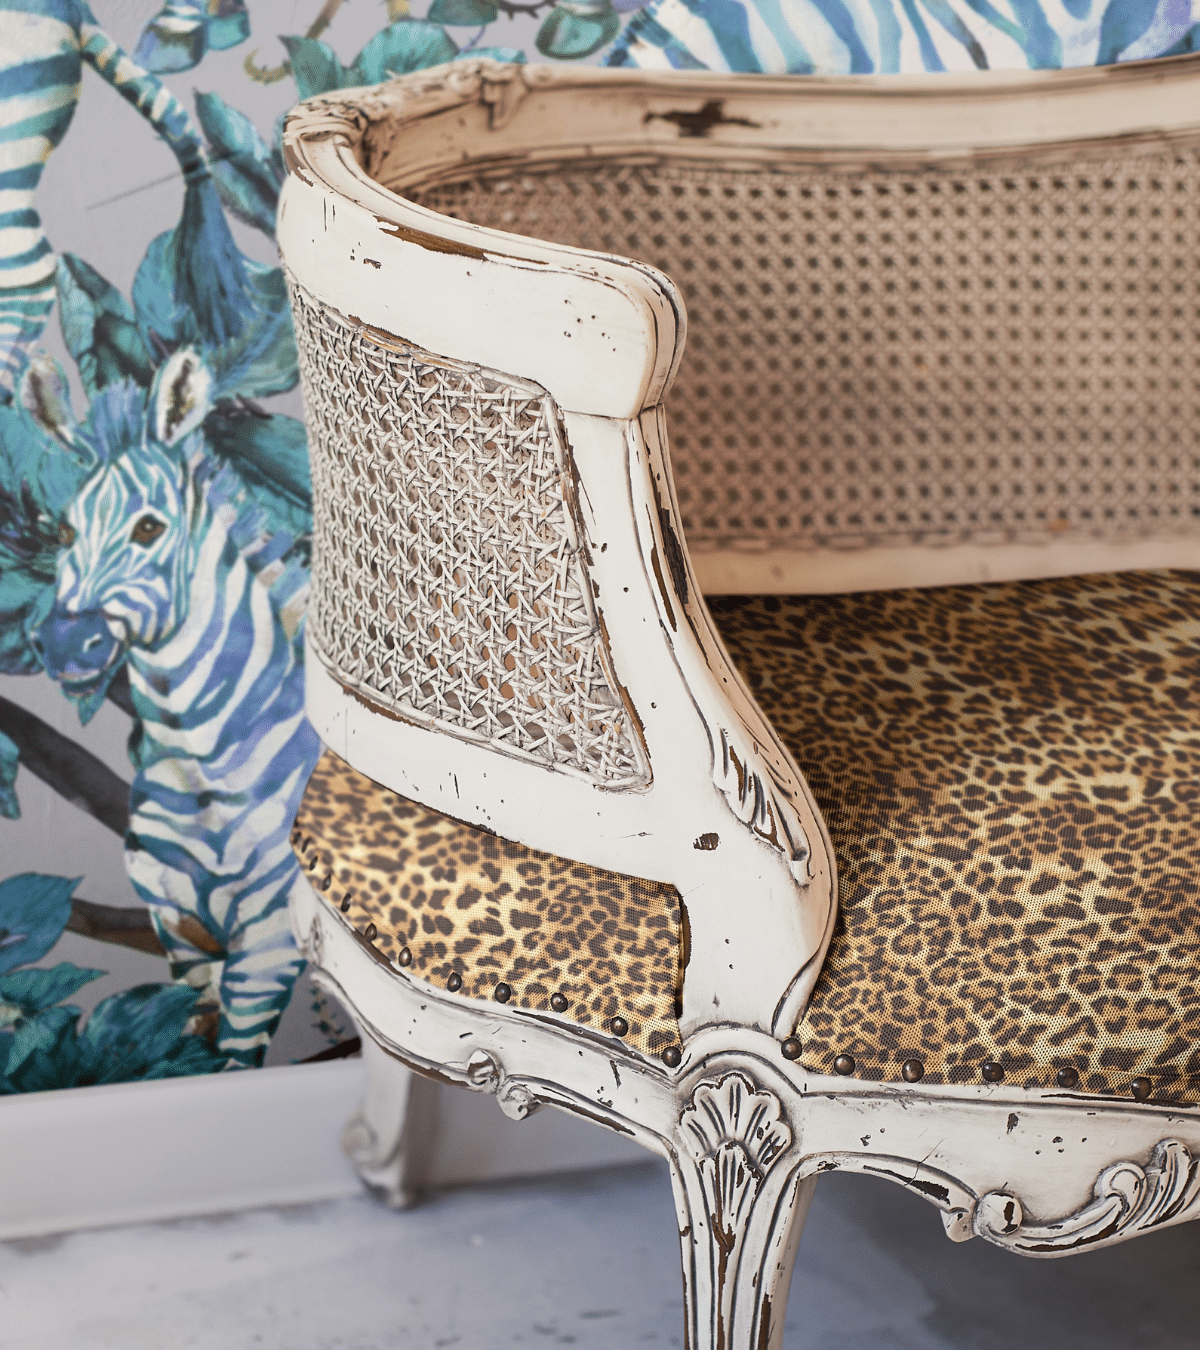 This Peel and Stick Zebra Wallpaper is Perfect for any Nursery. A modern, eclectic nursery evokes zebra print wallpaper paired with leopard print fabric.